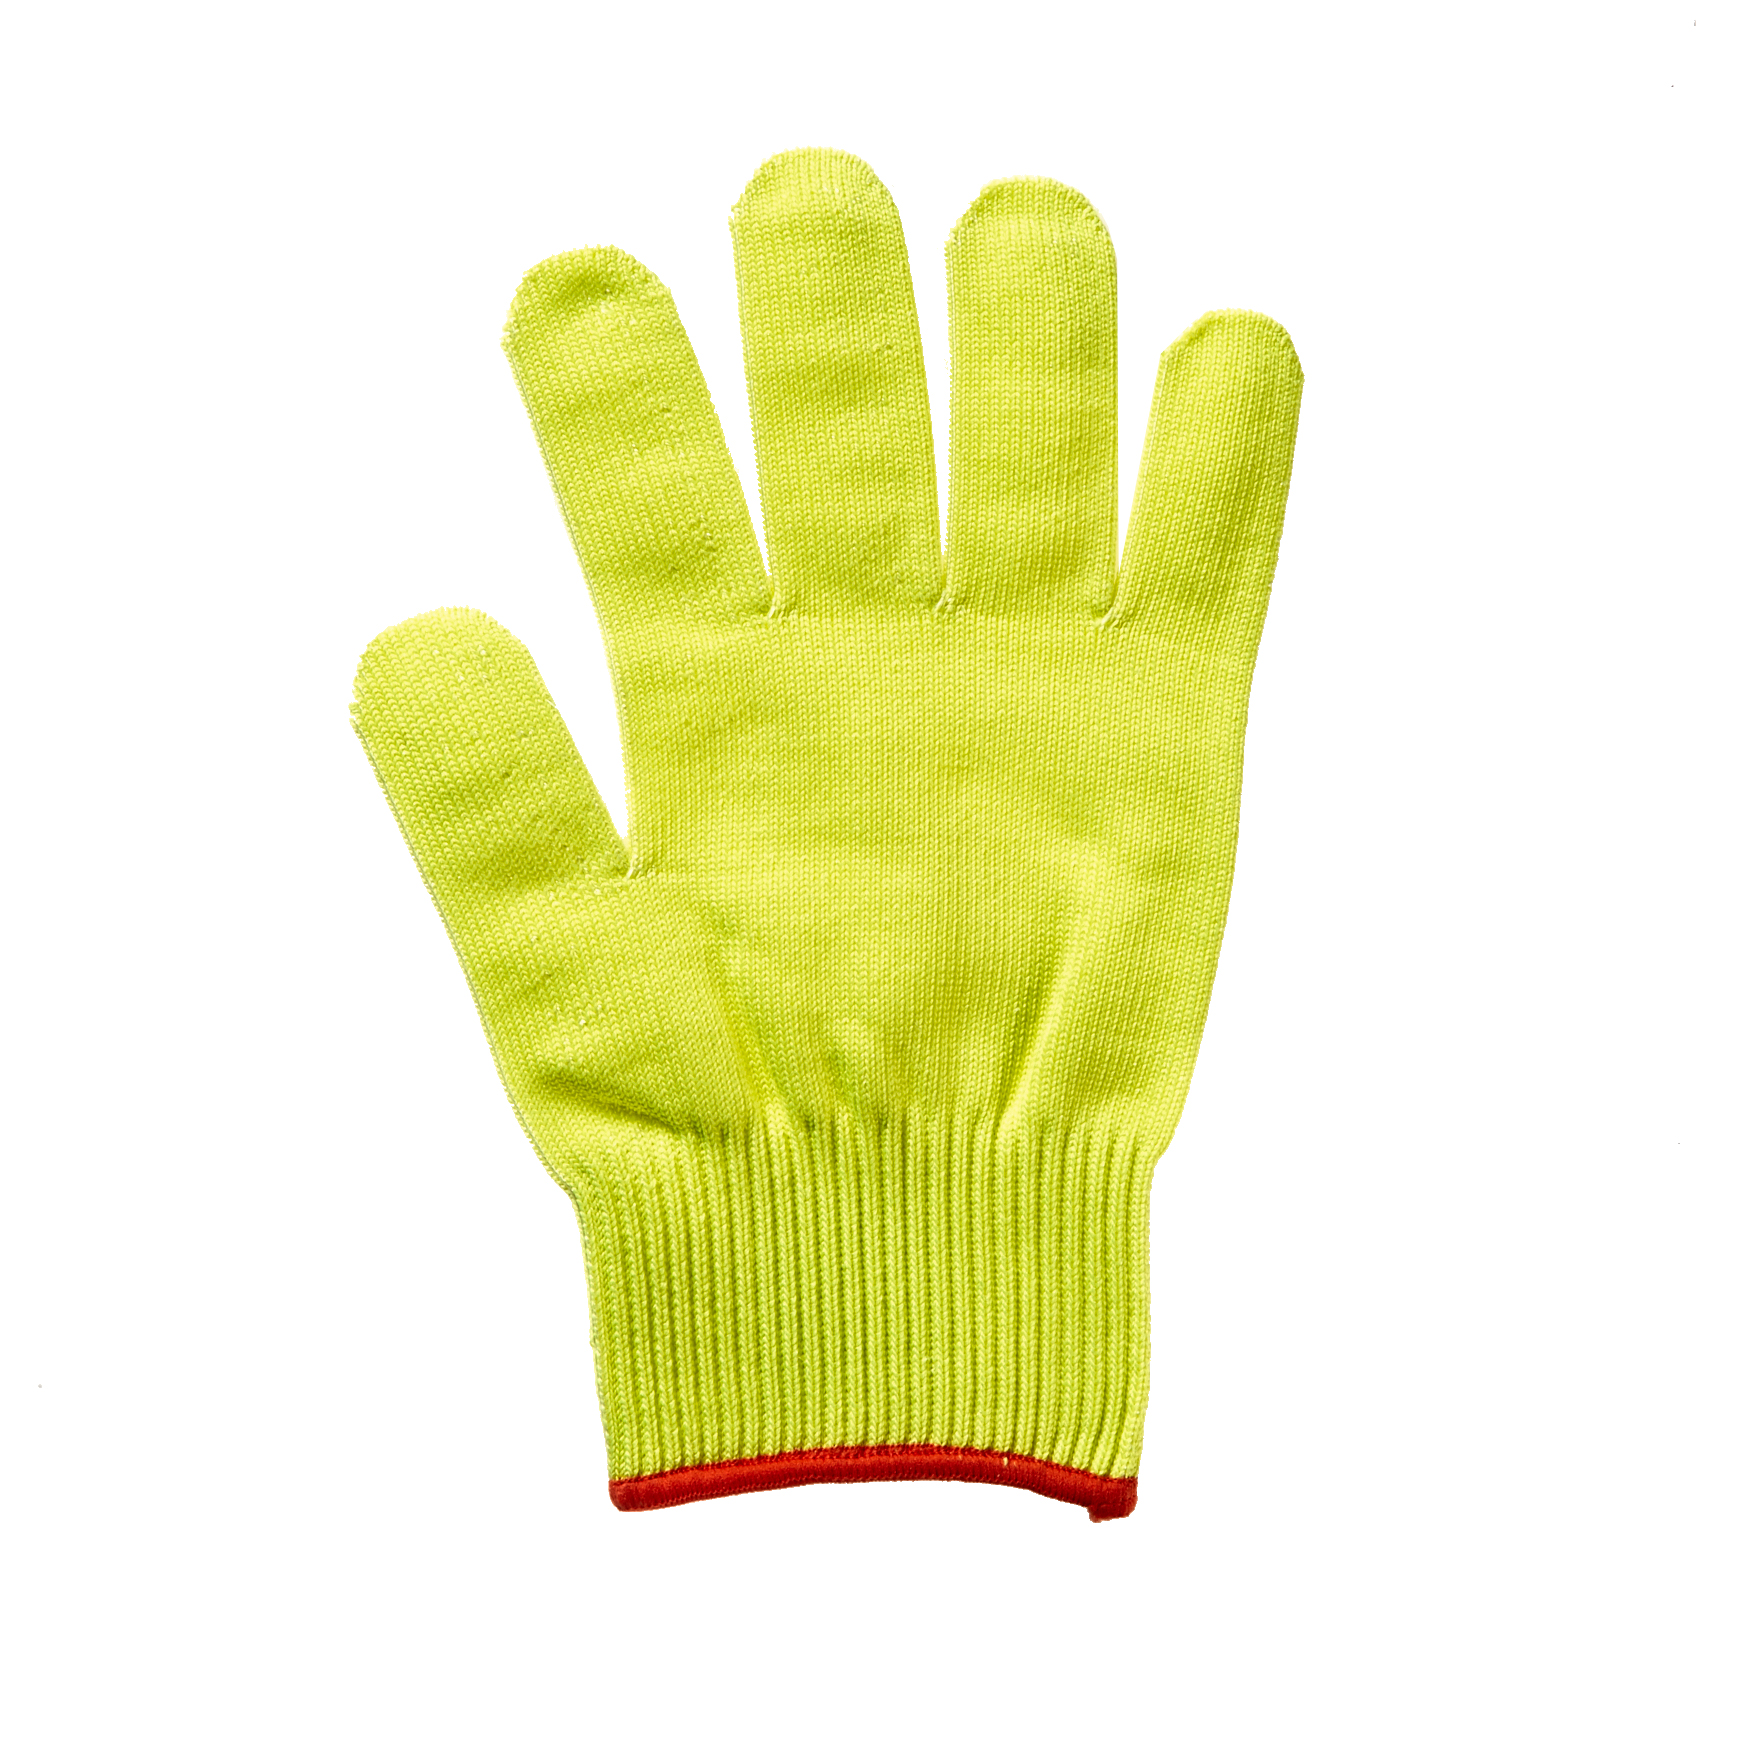 Mercer Culinary M33415YLS glove, cut resistant